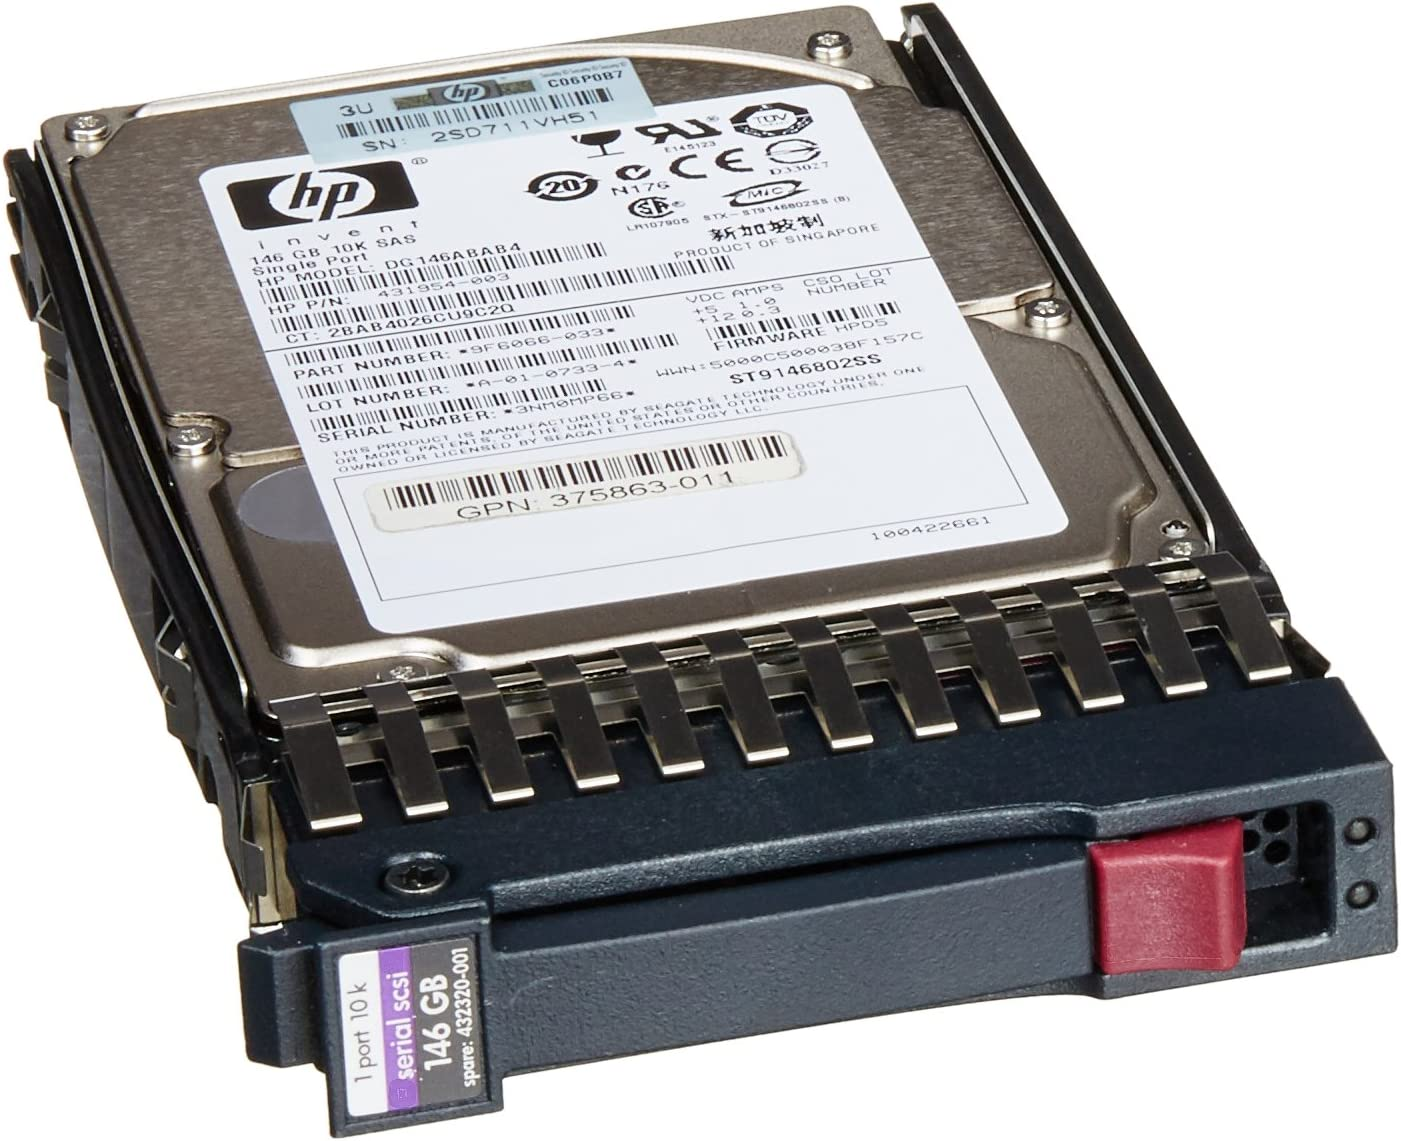 "HP 431958-B21 146 GB 2.5"" Internal Hard Drive"